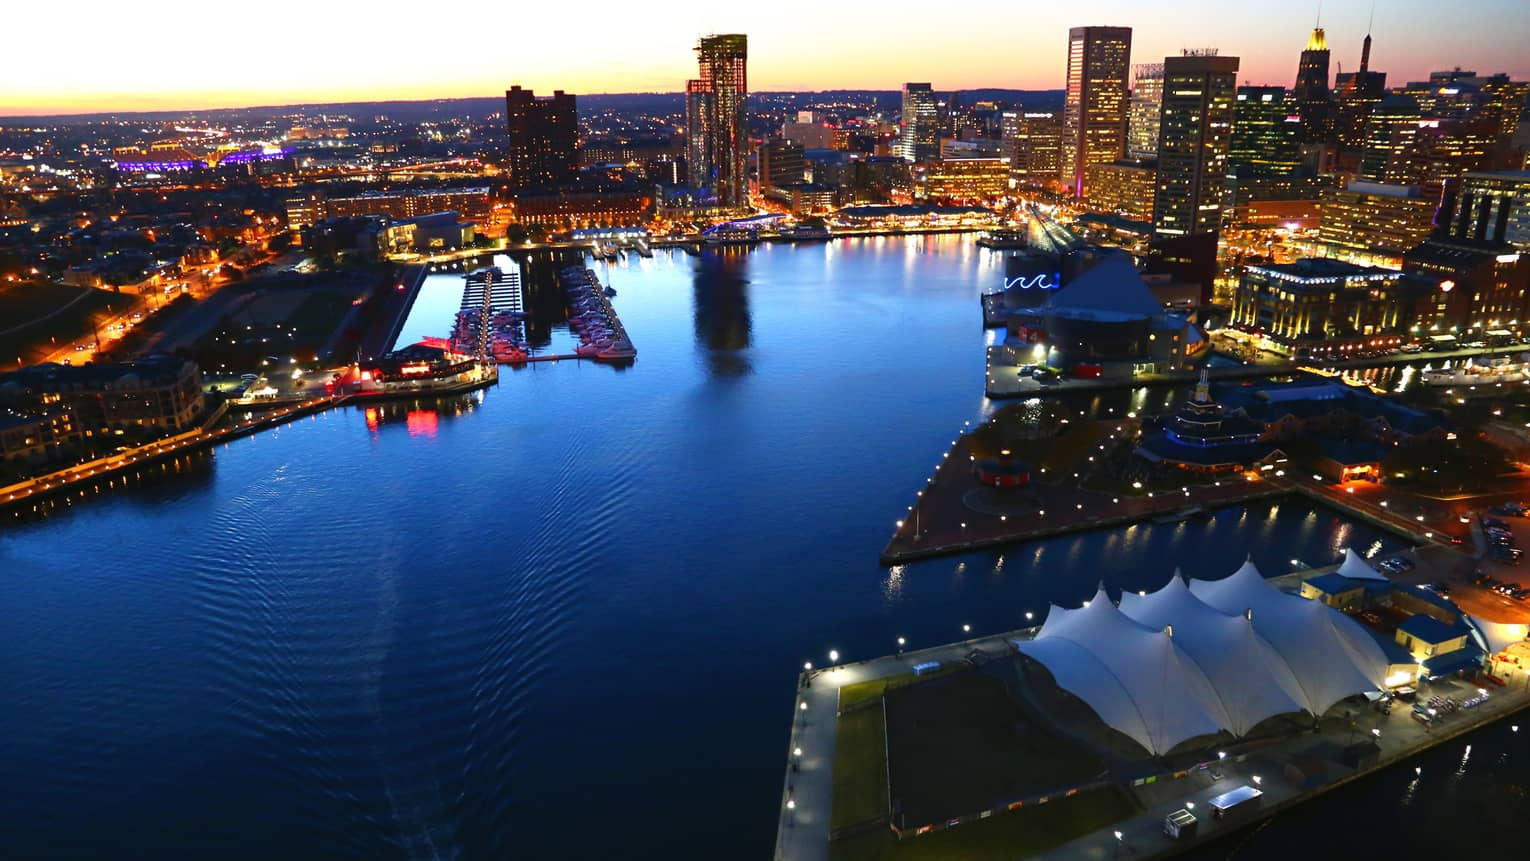 View of the harbour in Baltimore at dusk, surrounded by city lights